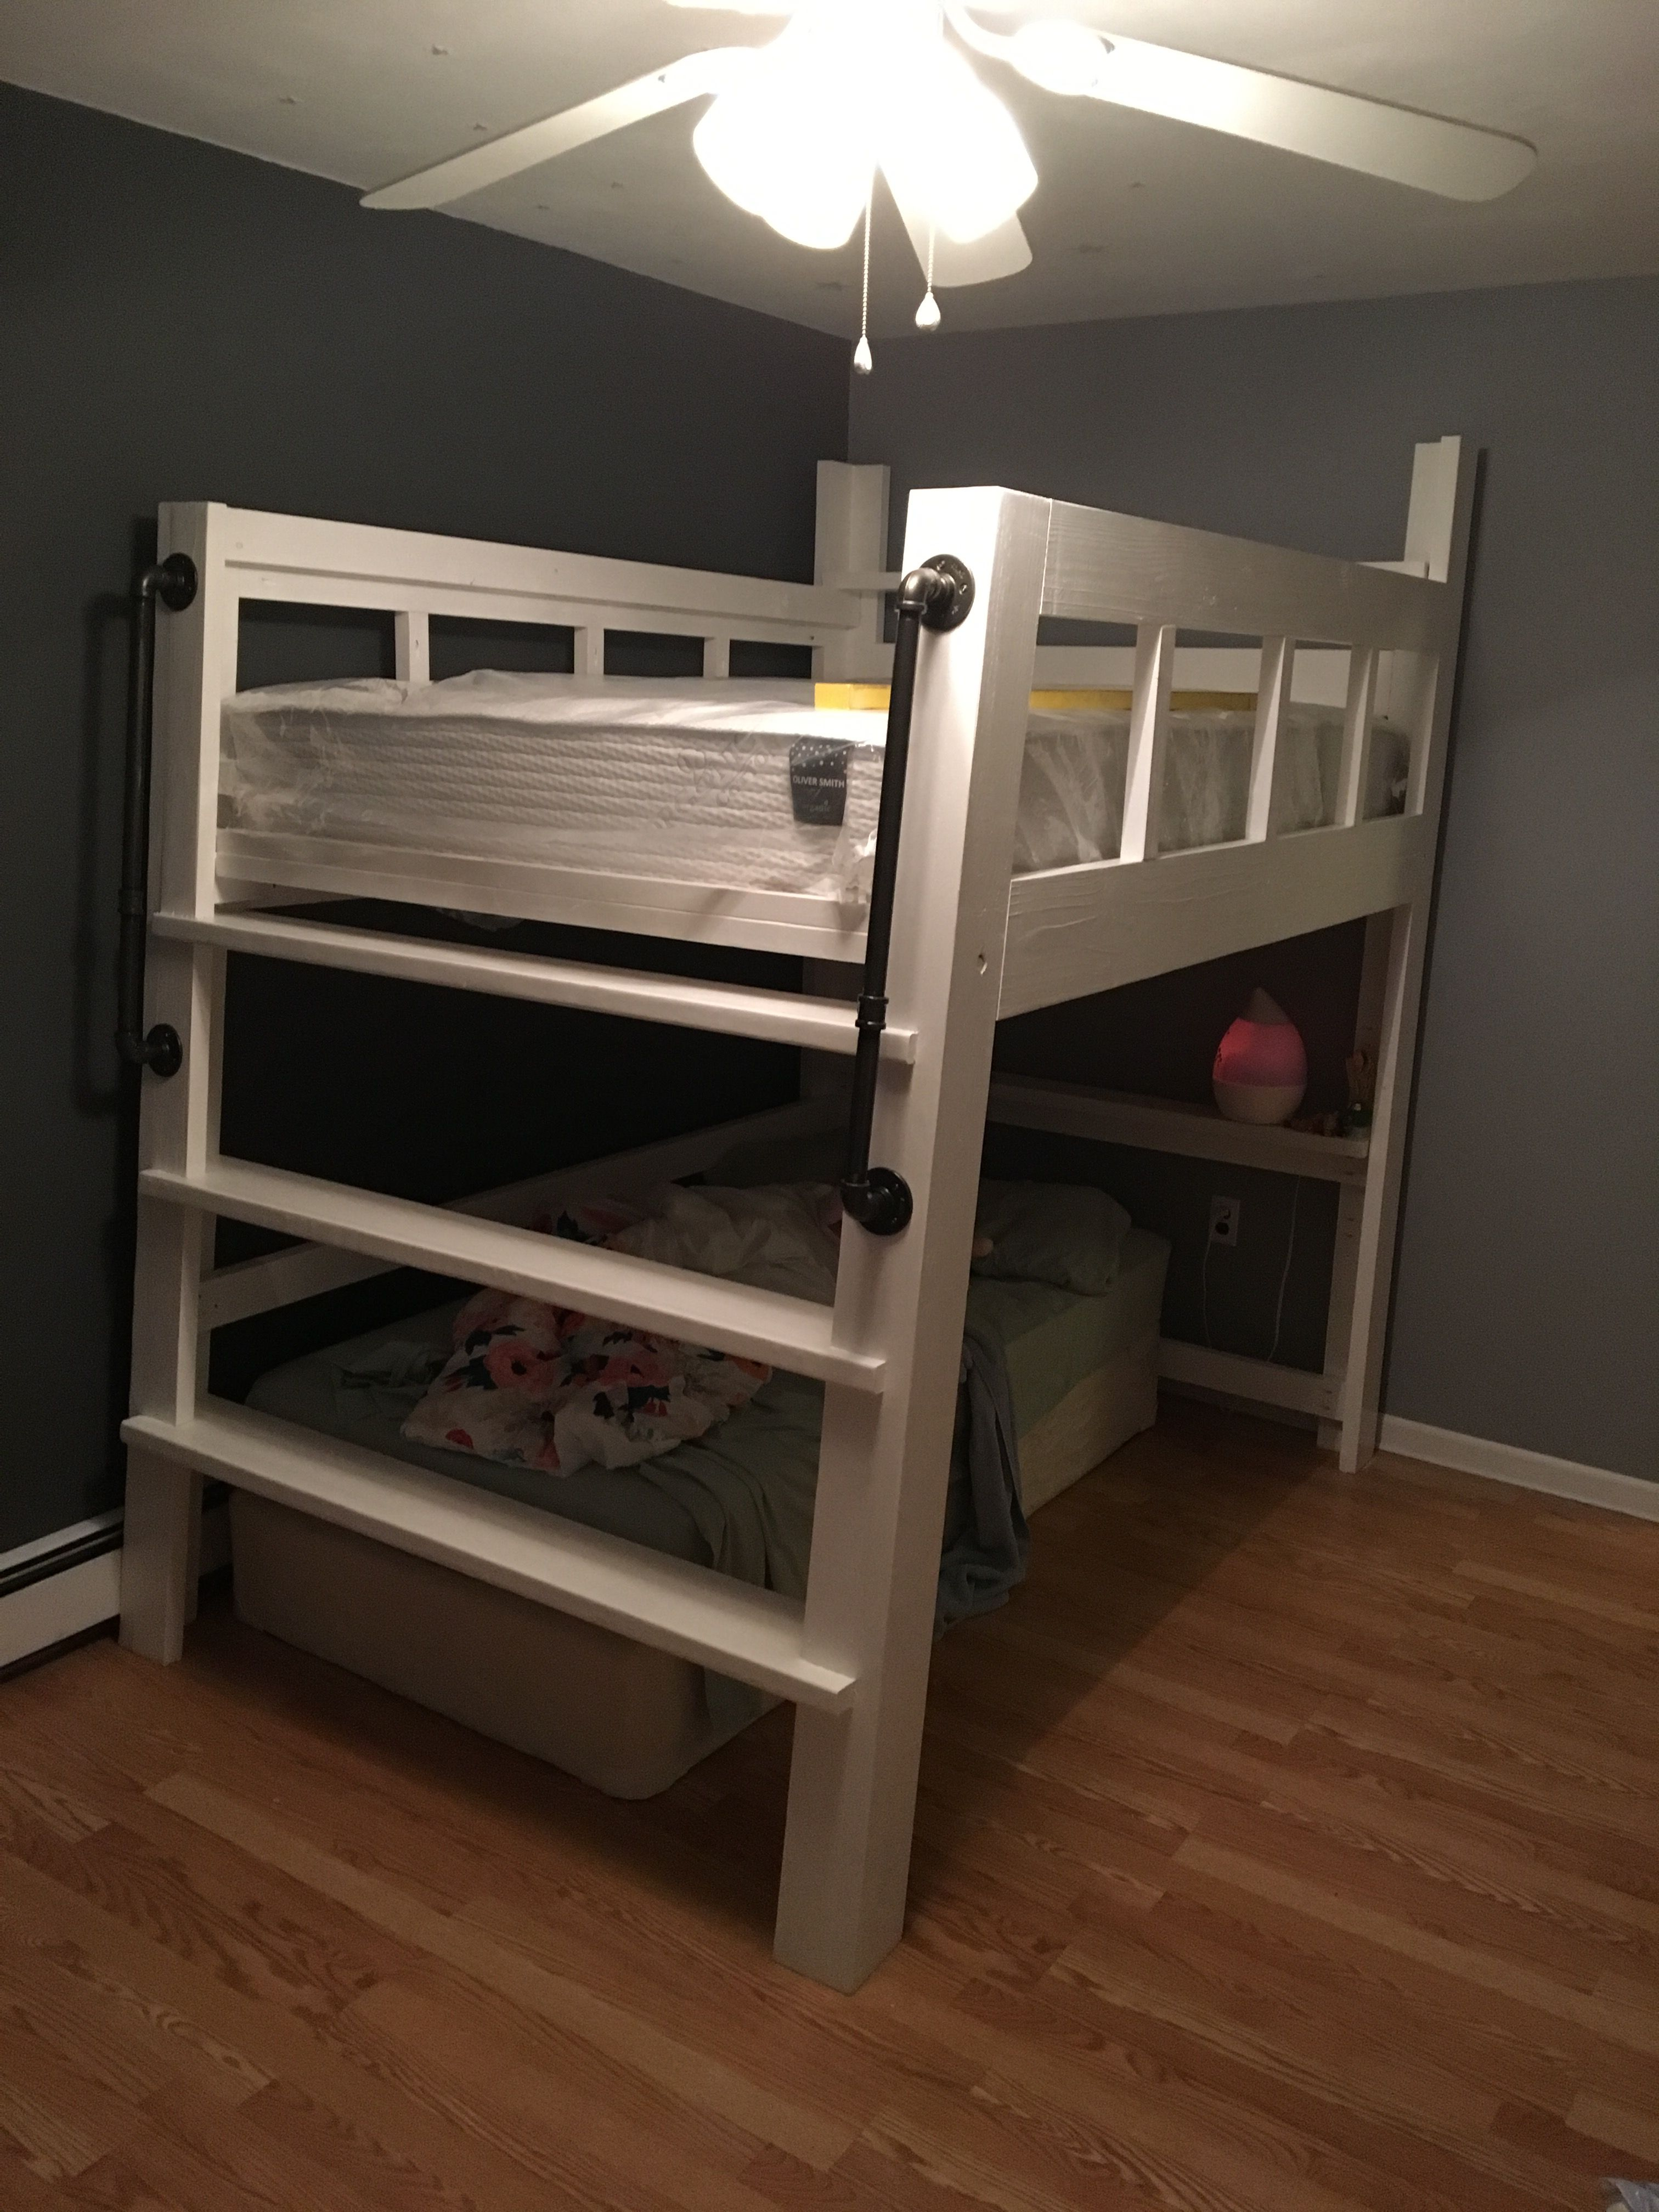 Bed Loft Diy Custom Full Size Loft Bed 2x4 And 2x6 Construction